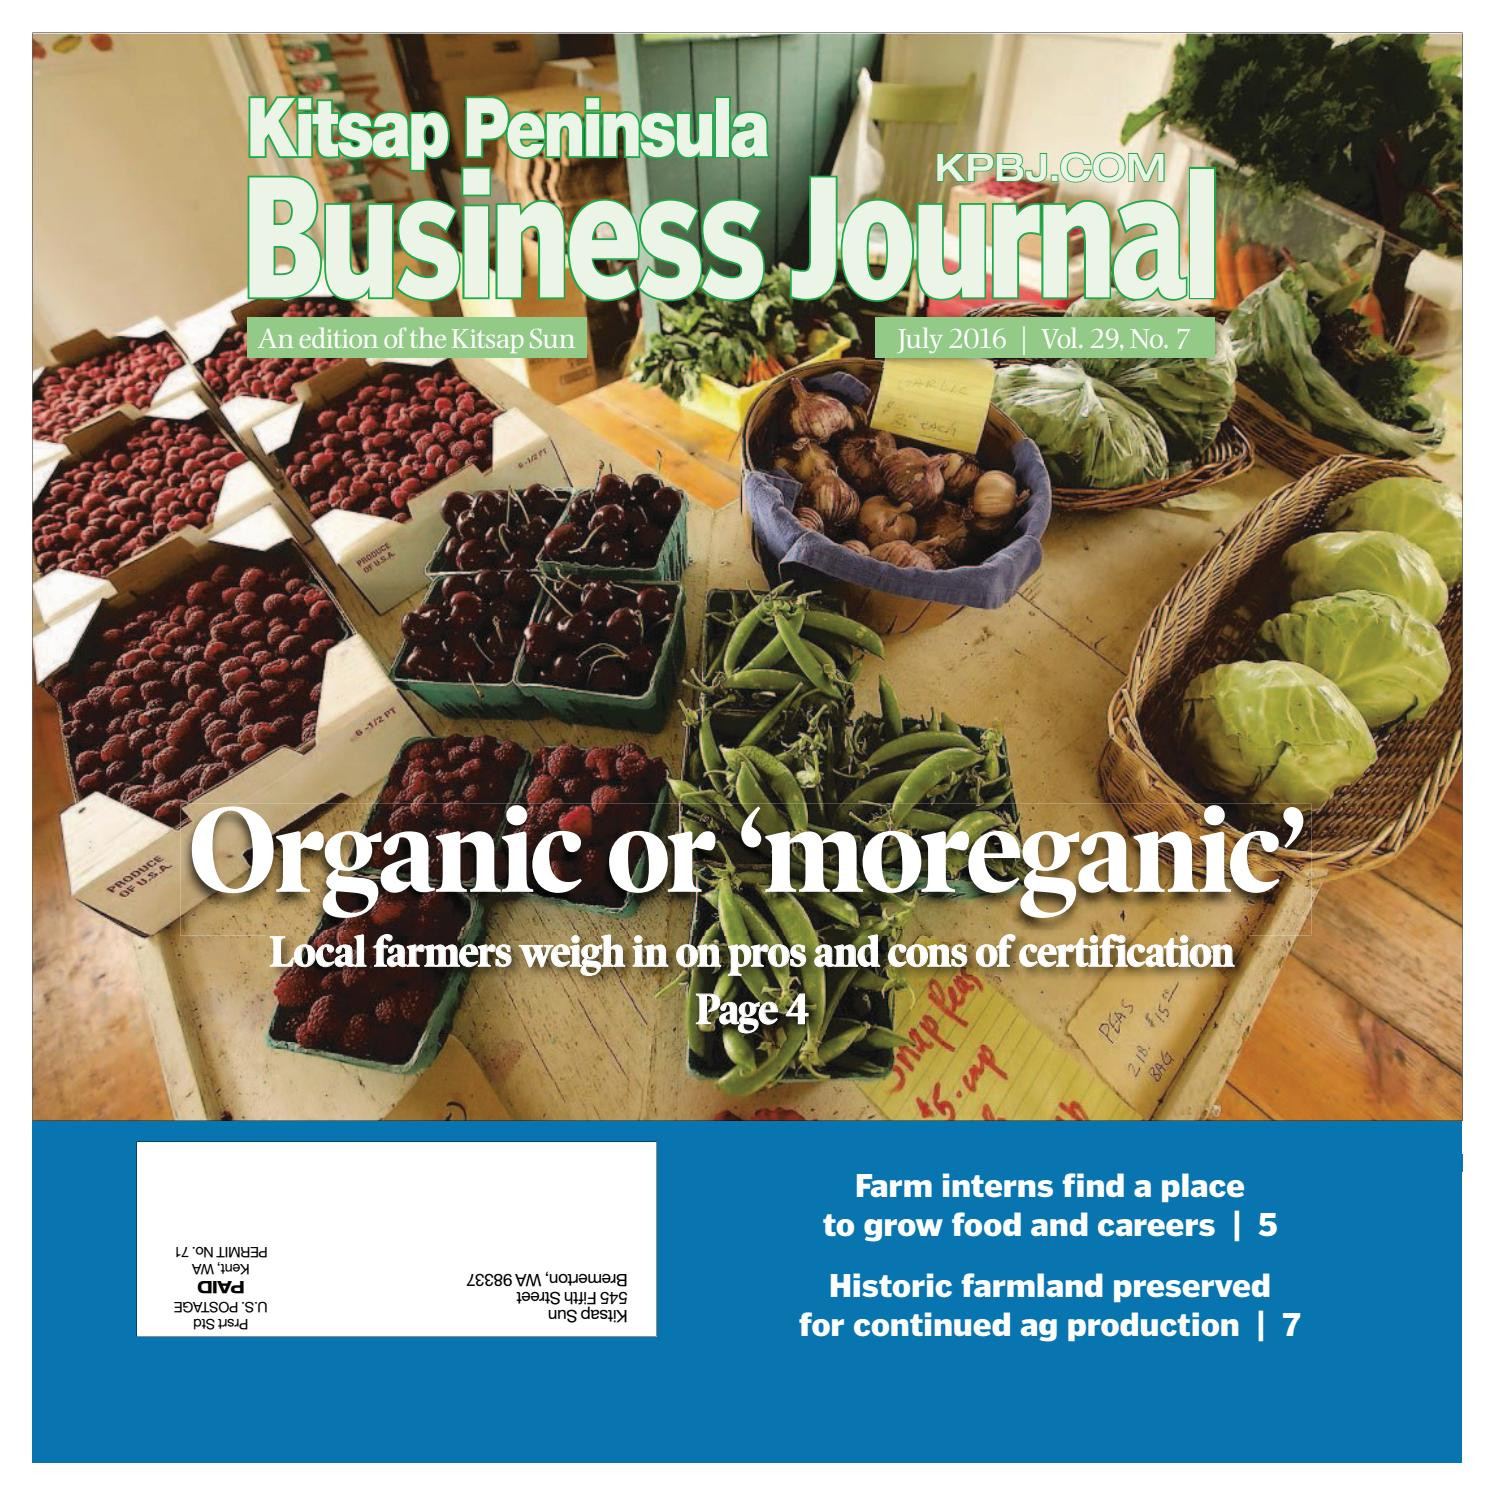 Kitsap Peninsula Business Journal July 2016 by Kitsap Sun Digital issuu